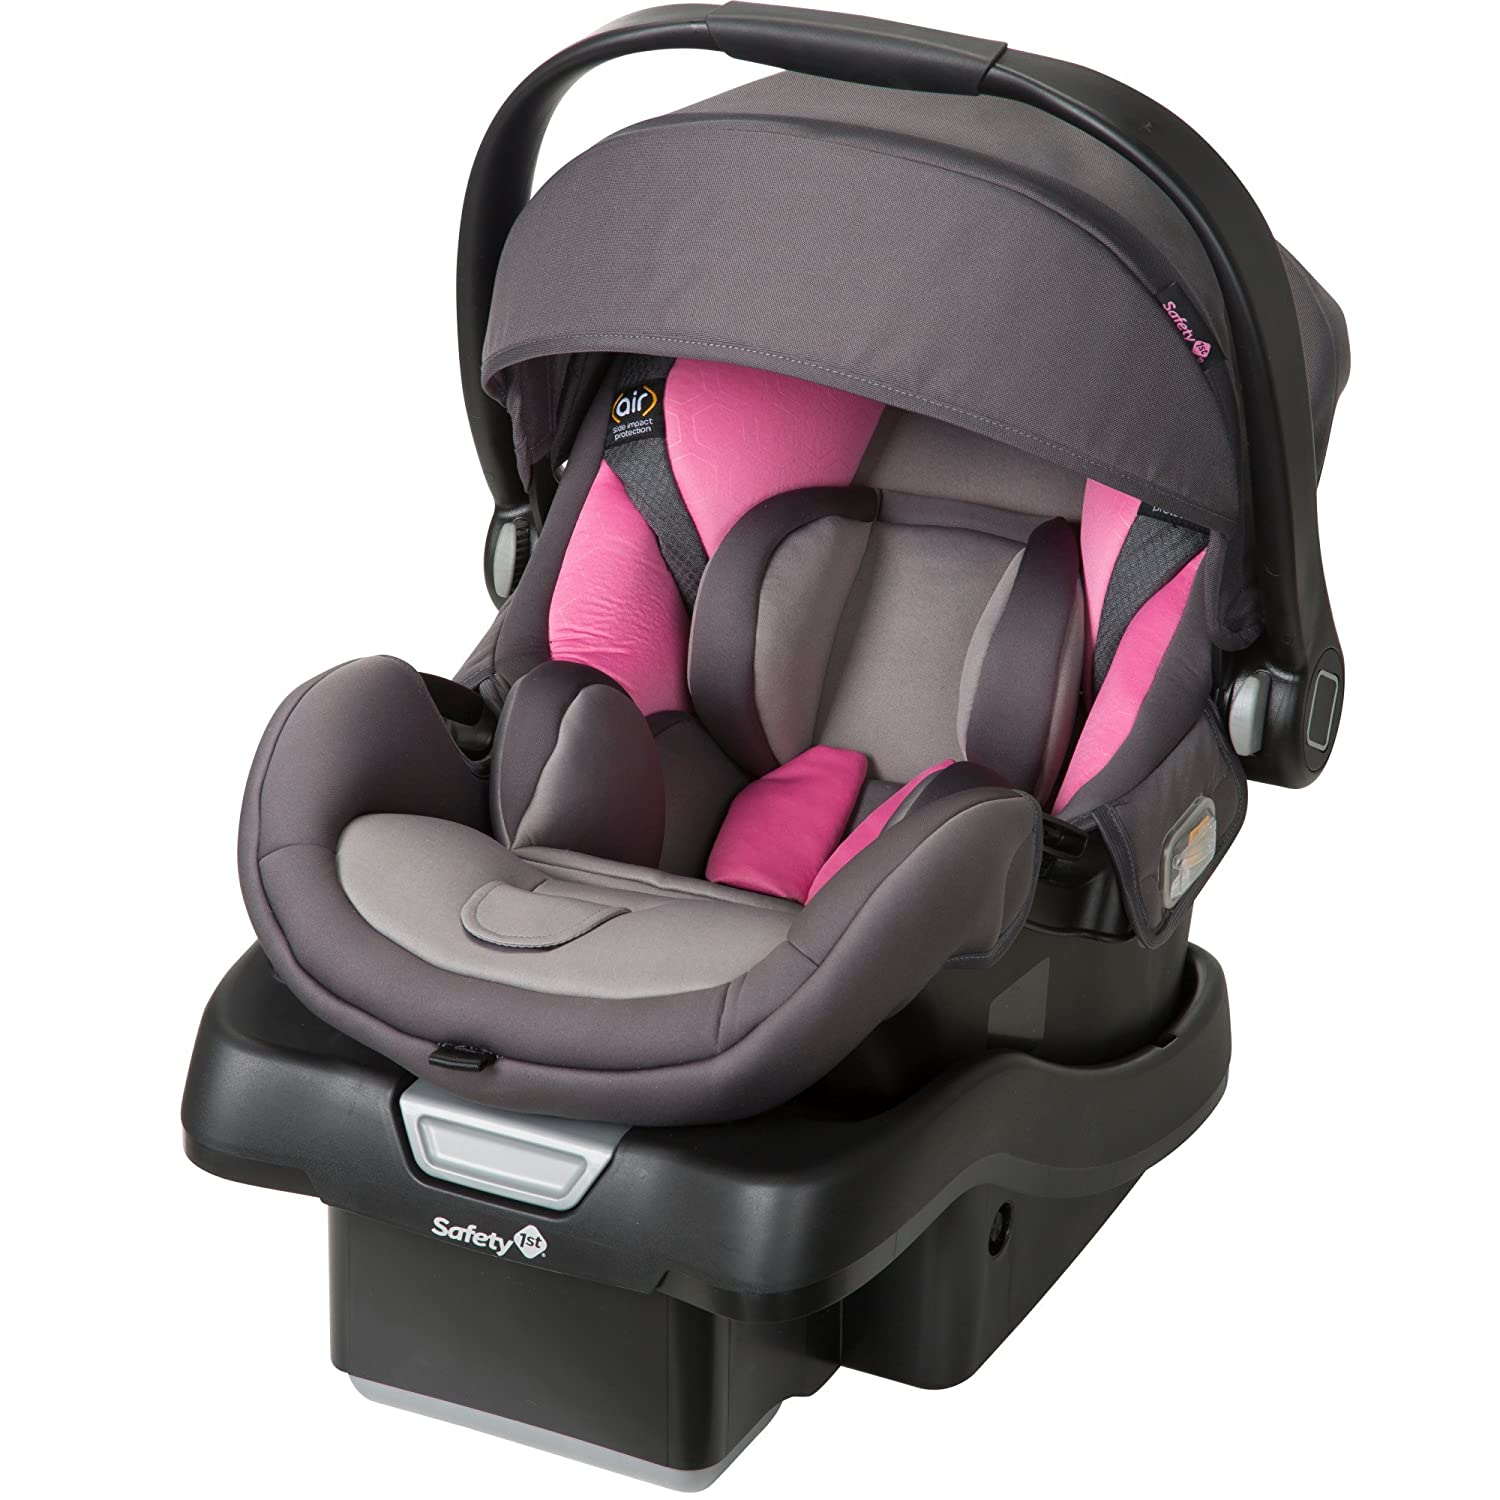 Safety 1st Onboard 35 Air 360 Infant Car Seat, Blush Pink HX Dorel Juvenile Group-CA IC263DYT